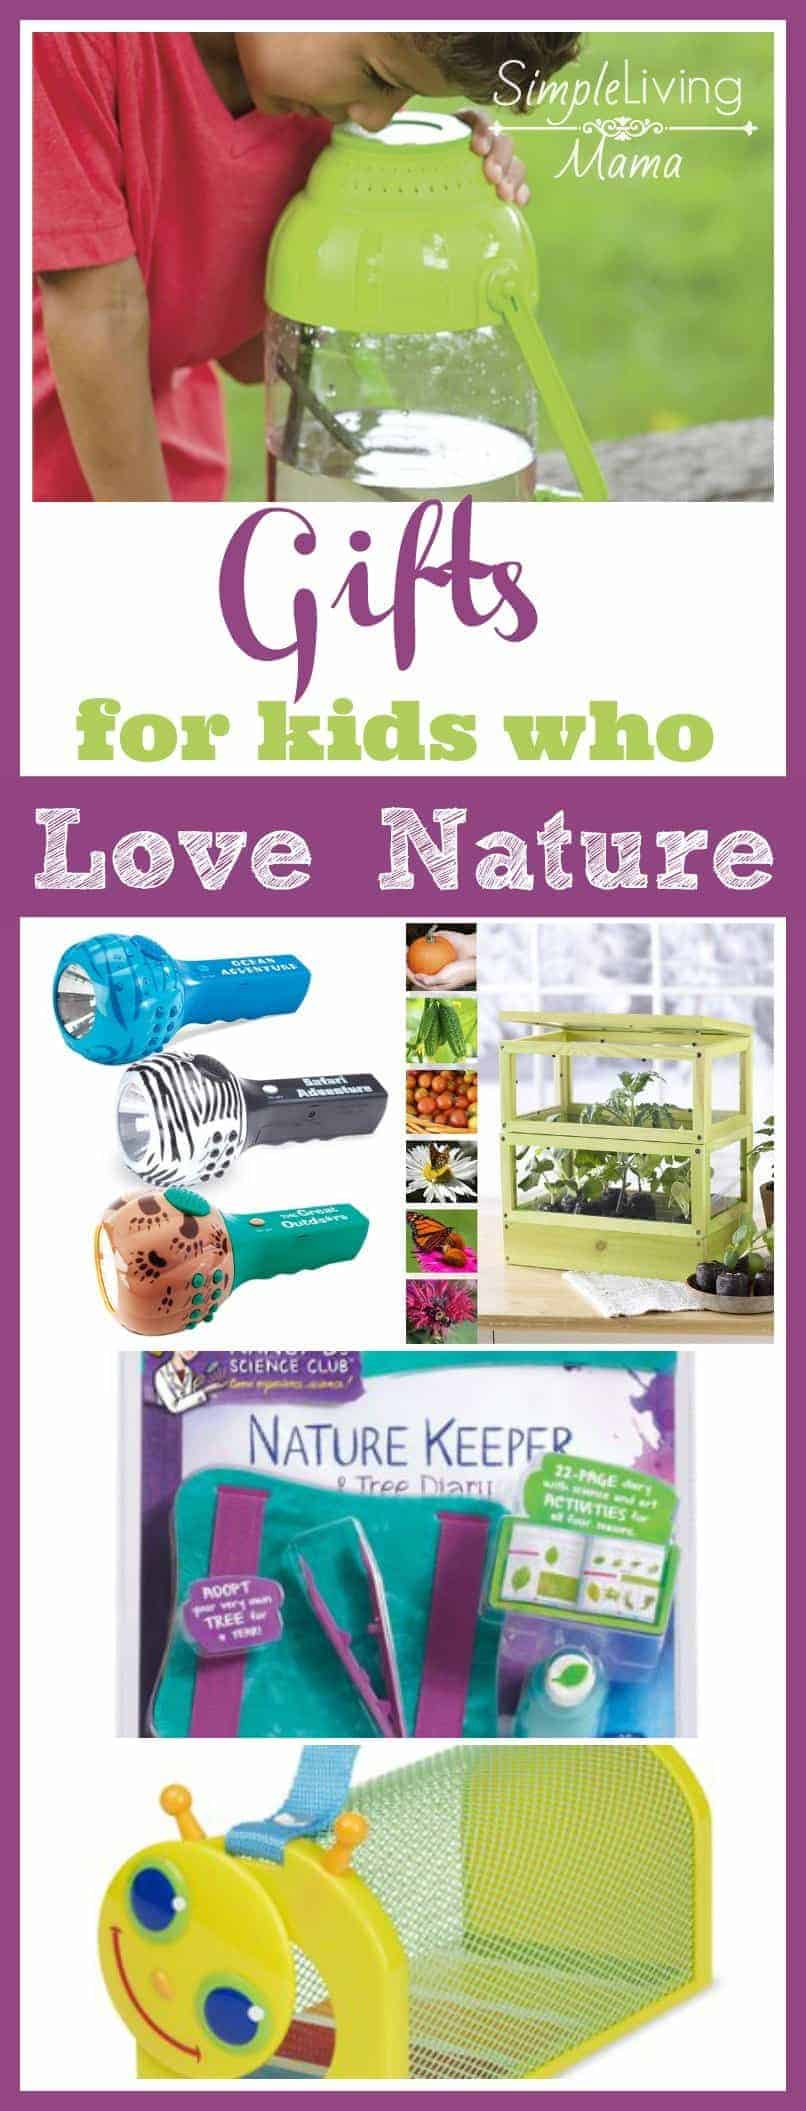 Does your child love to explore outside? Find the perfect present with these gifts for kids who love nature!